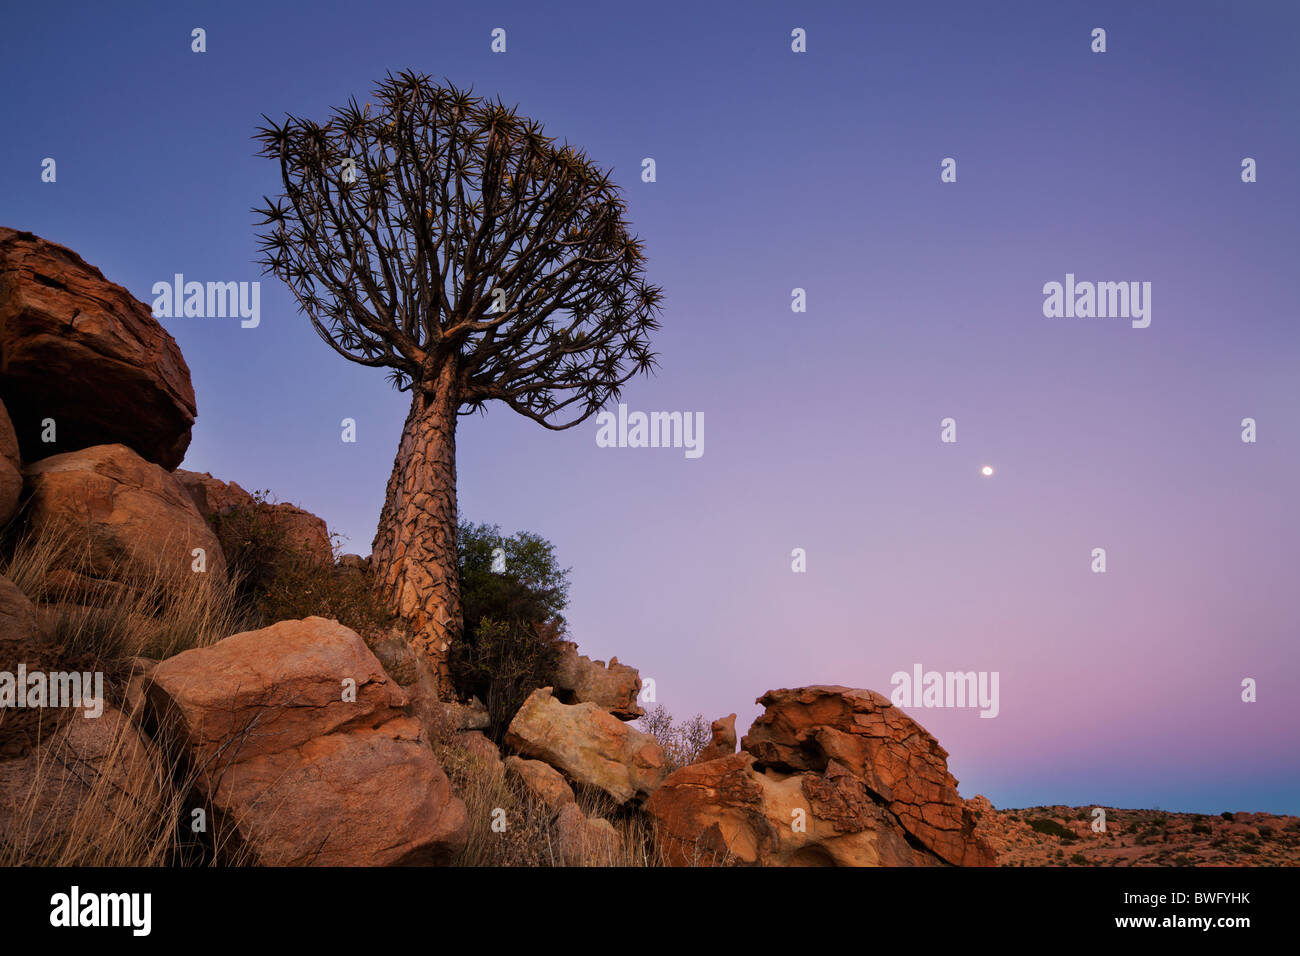 Wide view of a Quiver Tree at dawn with the moon rising in the sky. Richtersveld National Park, South Africa Stock Photo